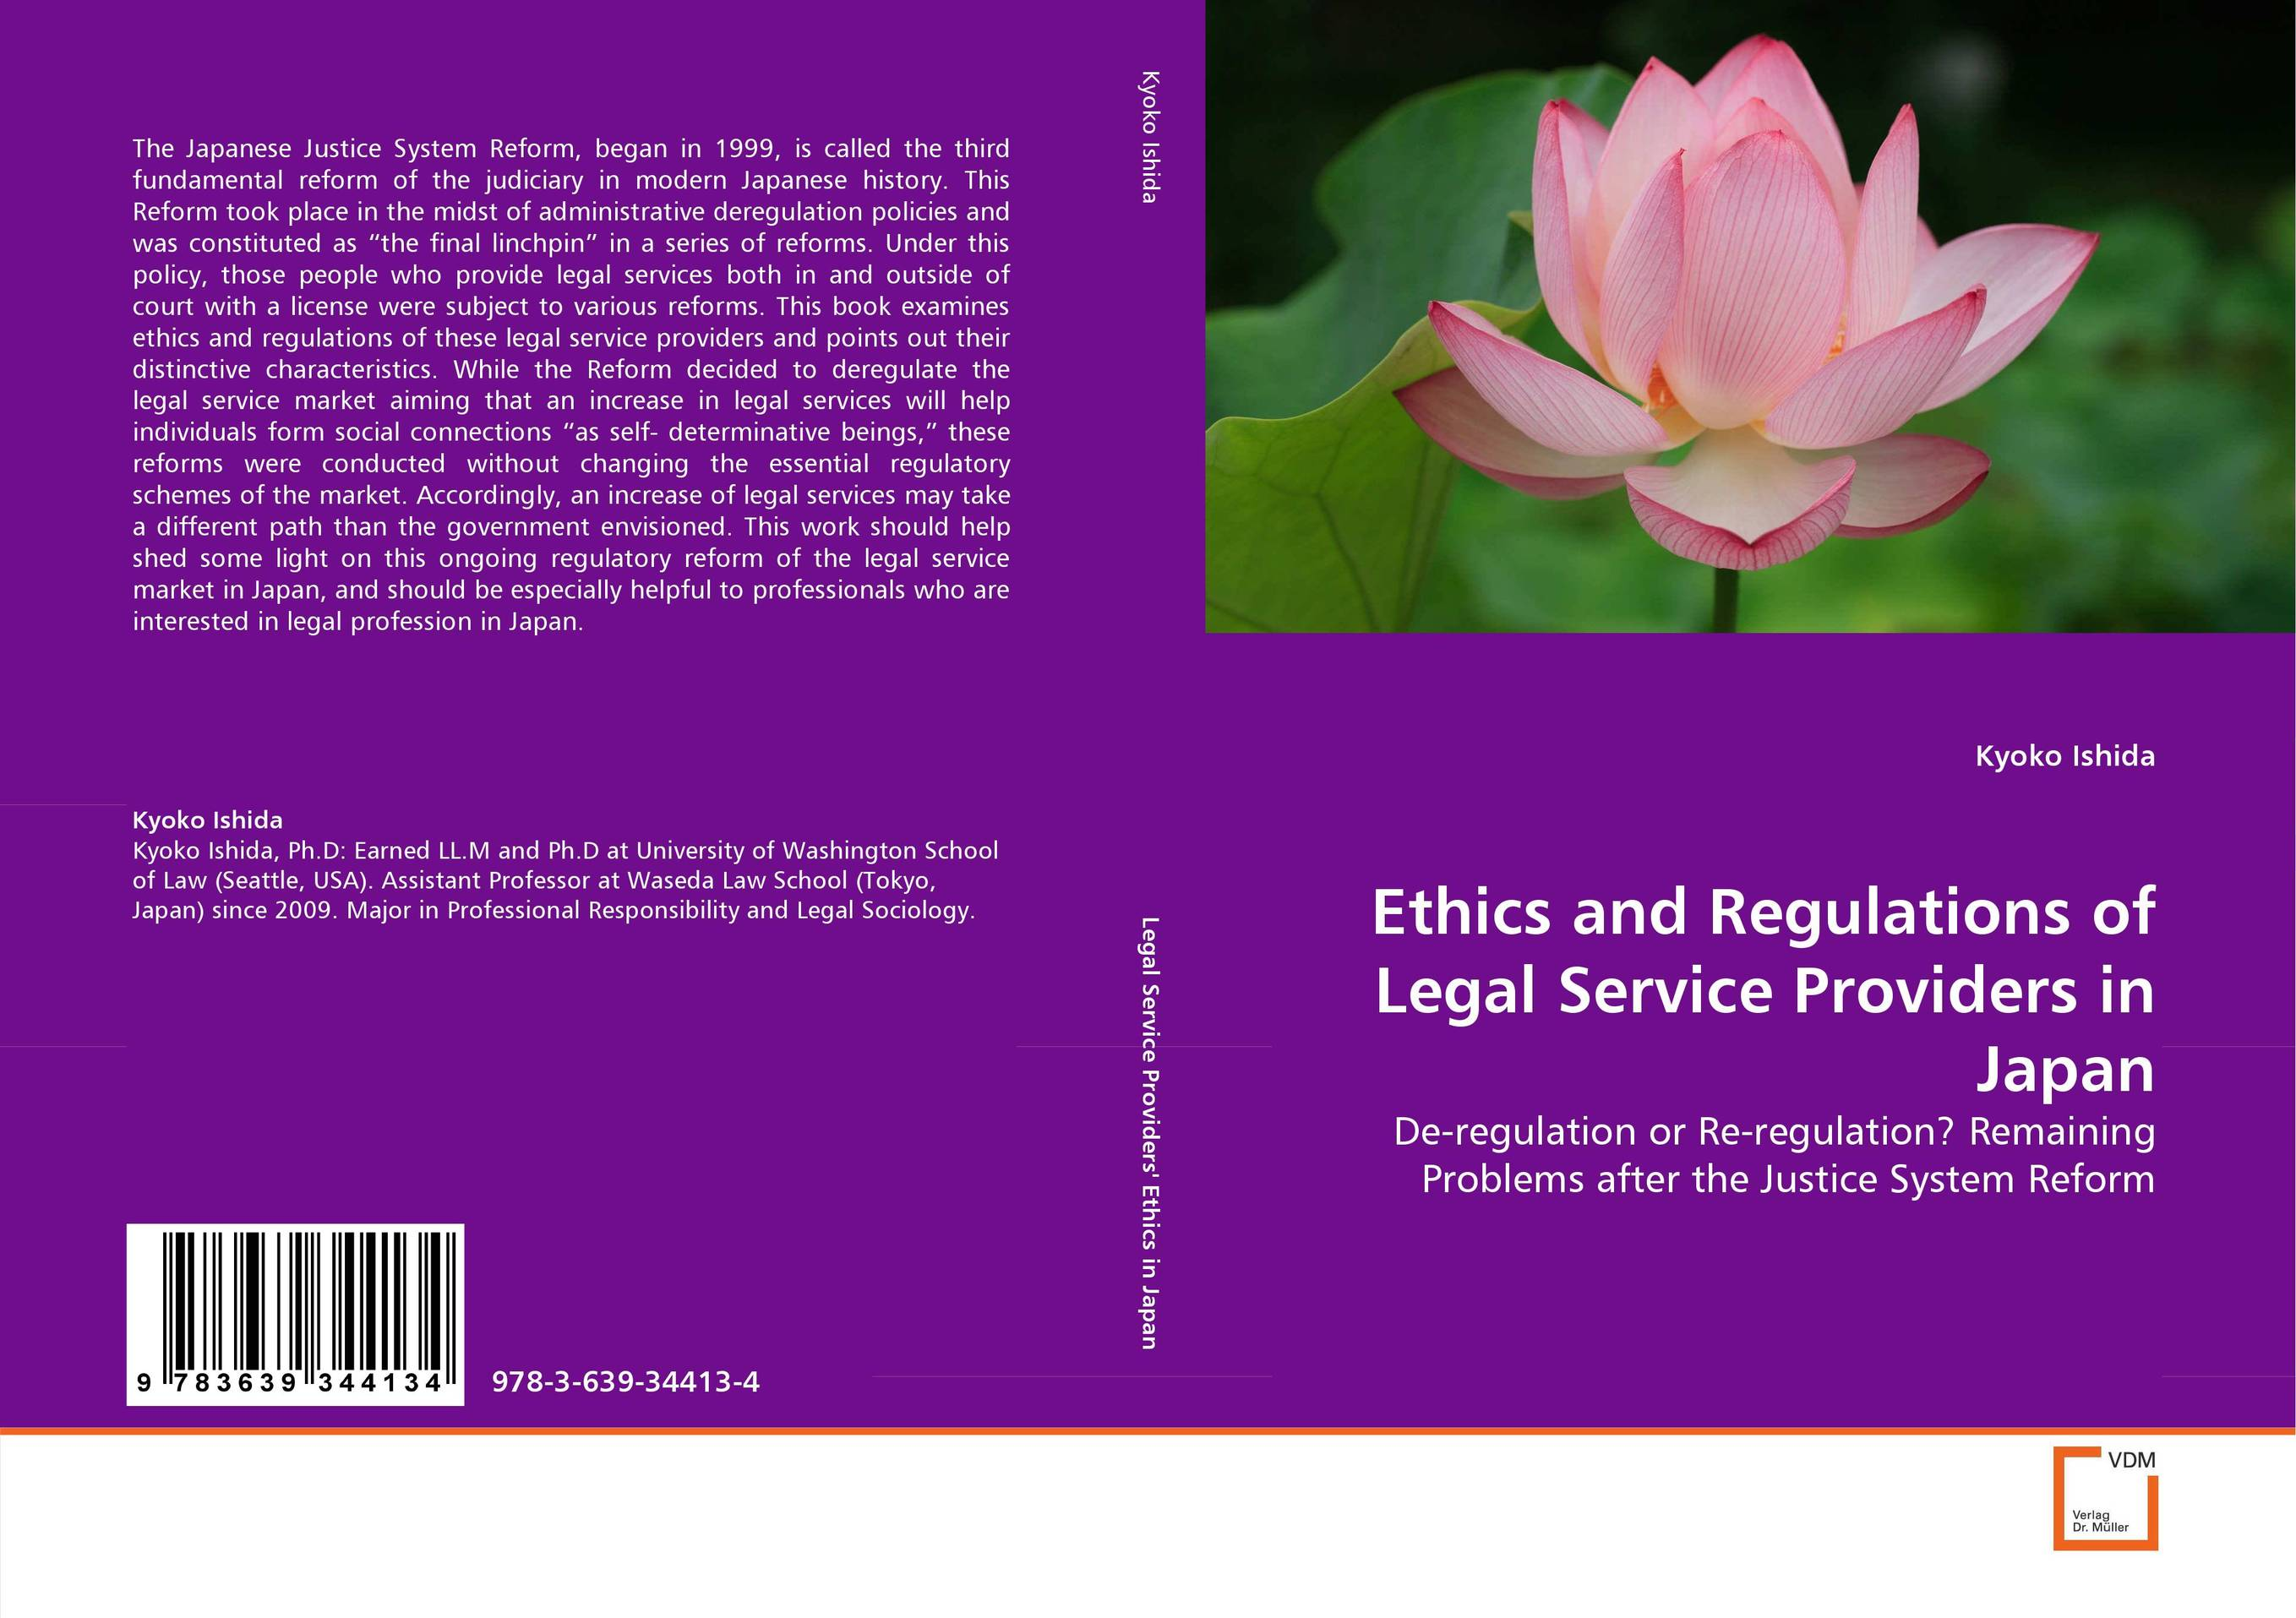 Ethics and Regulations of Legal Service Providers in Japan kittop3868top7532 value kit tops snap off job work order form top3868 and tops the legal pad legal rule perforated pads top7532